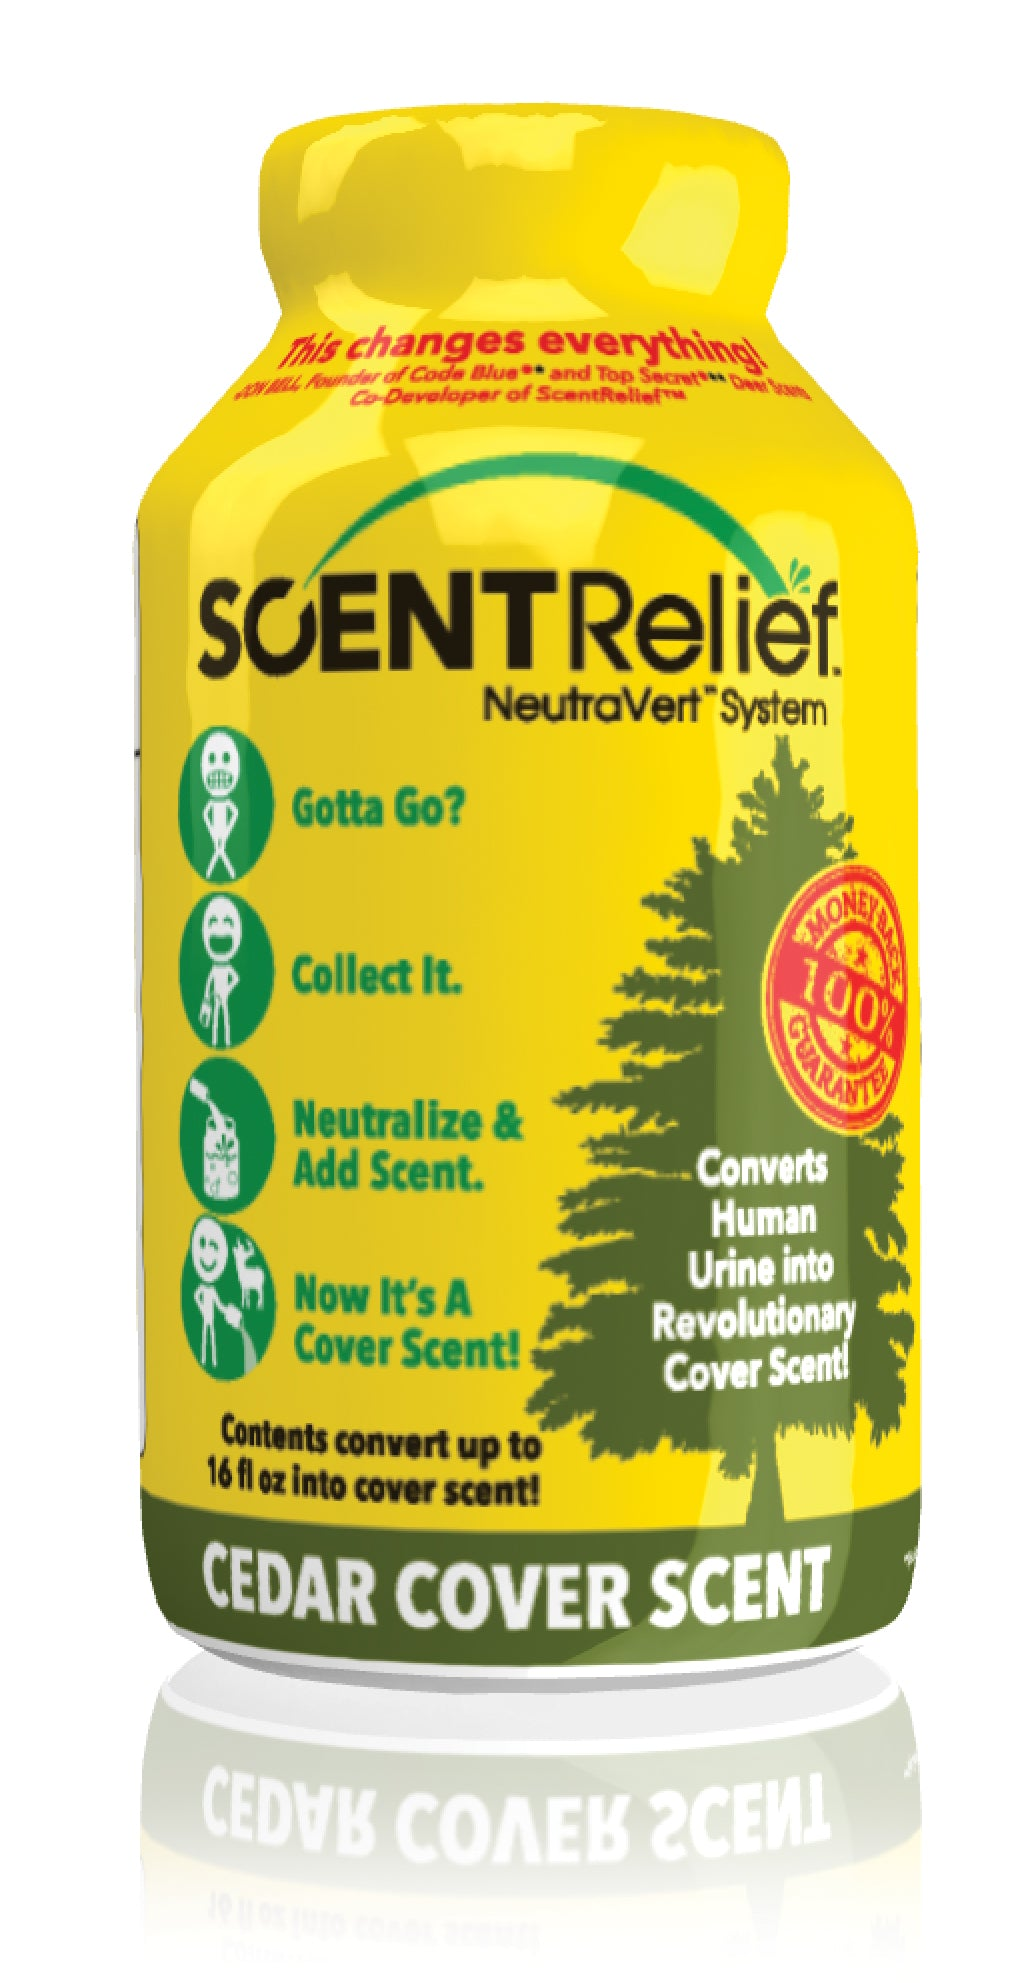 Scent Relief Cedar Cover Scent